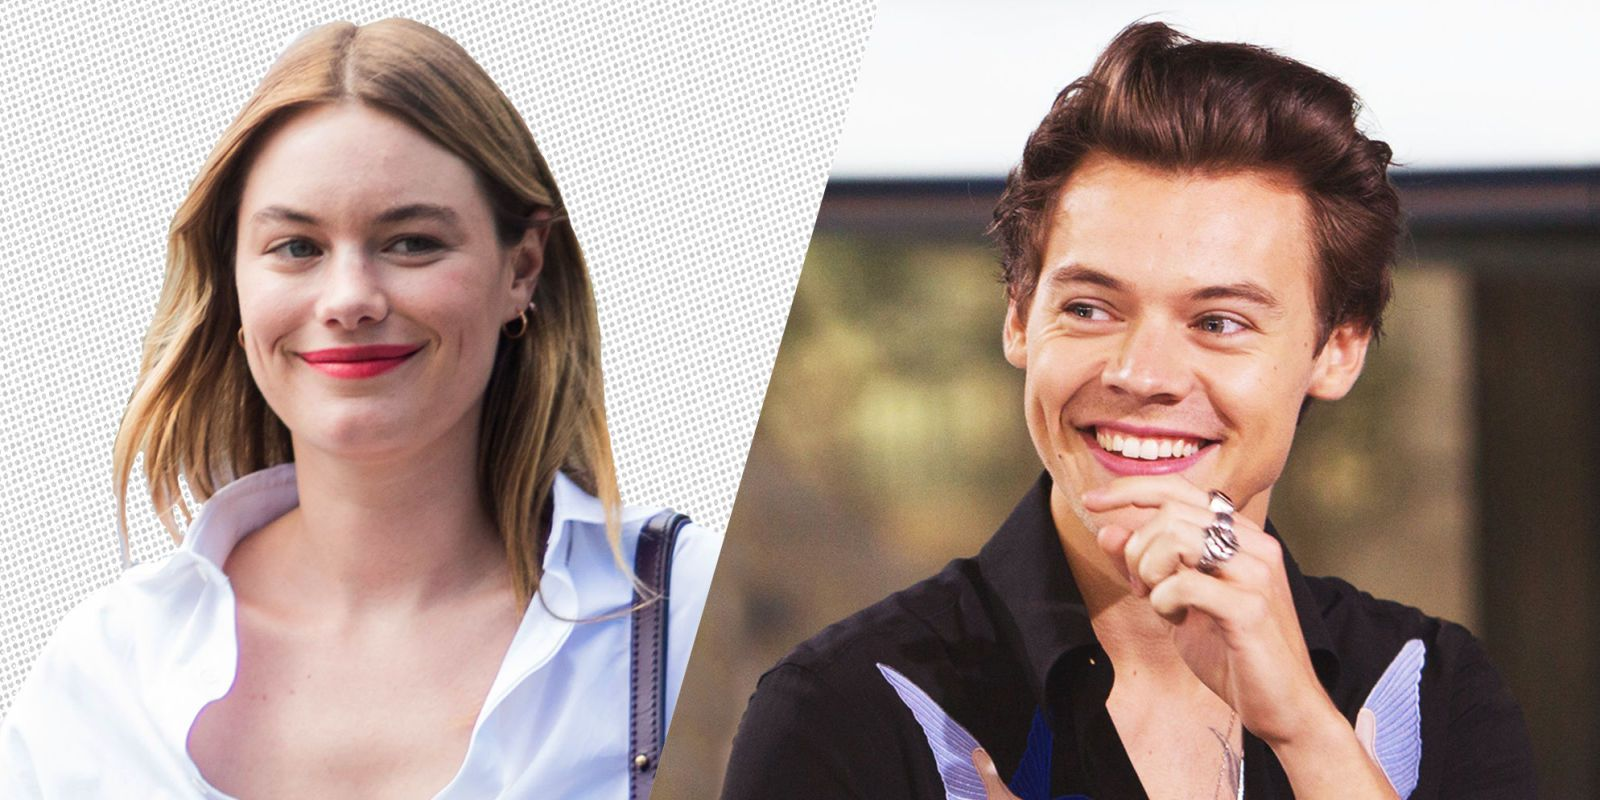 Harry Styles Fall Wallpaper Harry Styles Dating Camille Rowe Report Harry Styles